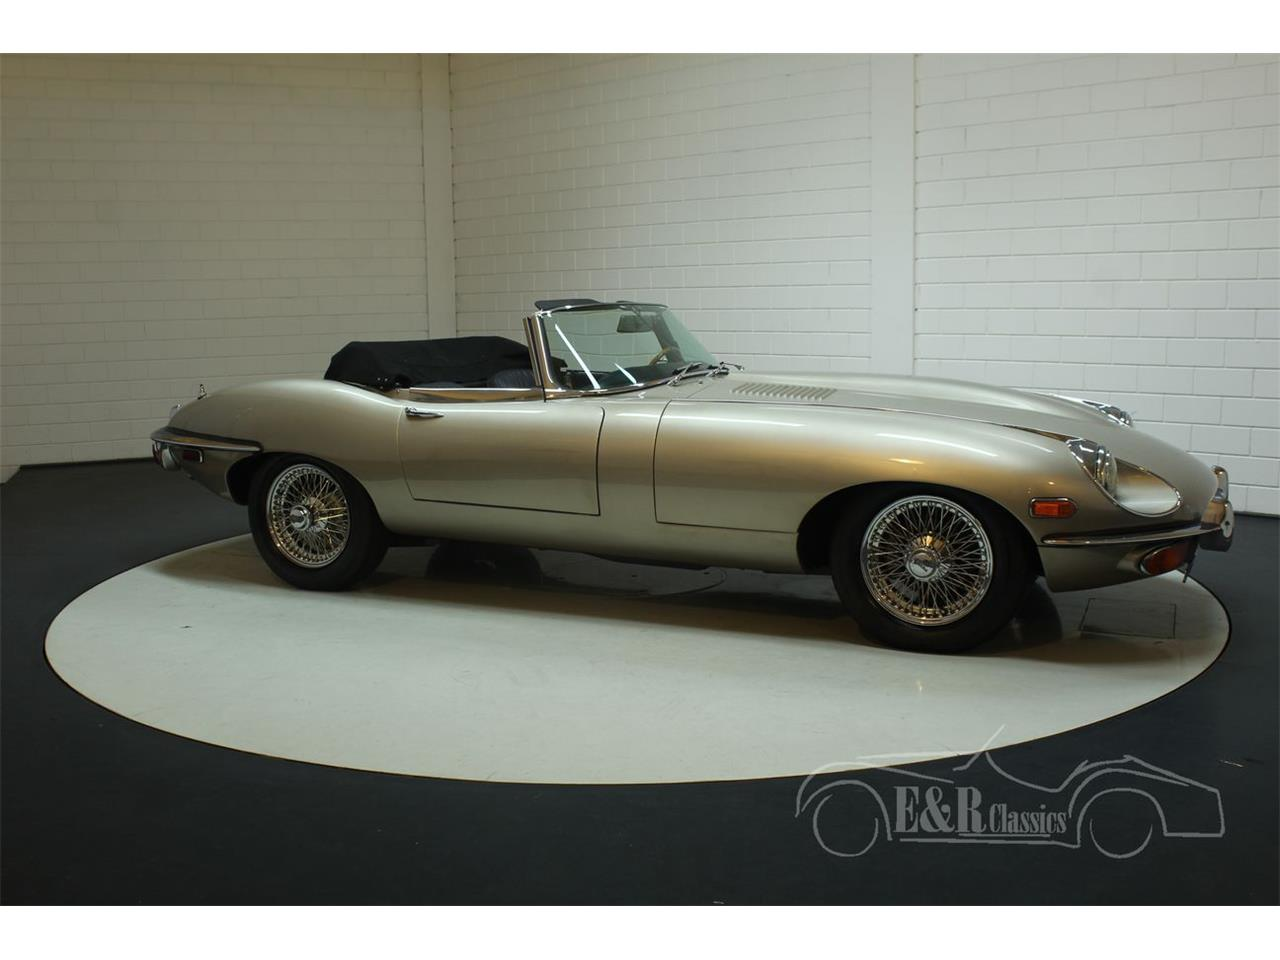 Large Picture of Classic '70 Jaguar E-Type located in Waalwijk - Keine Angabe - - $112,750.00 Offered by E & R Classics - PH40